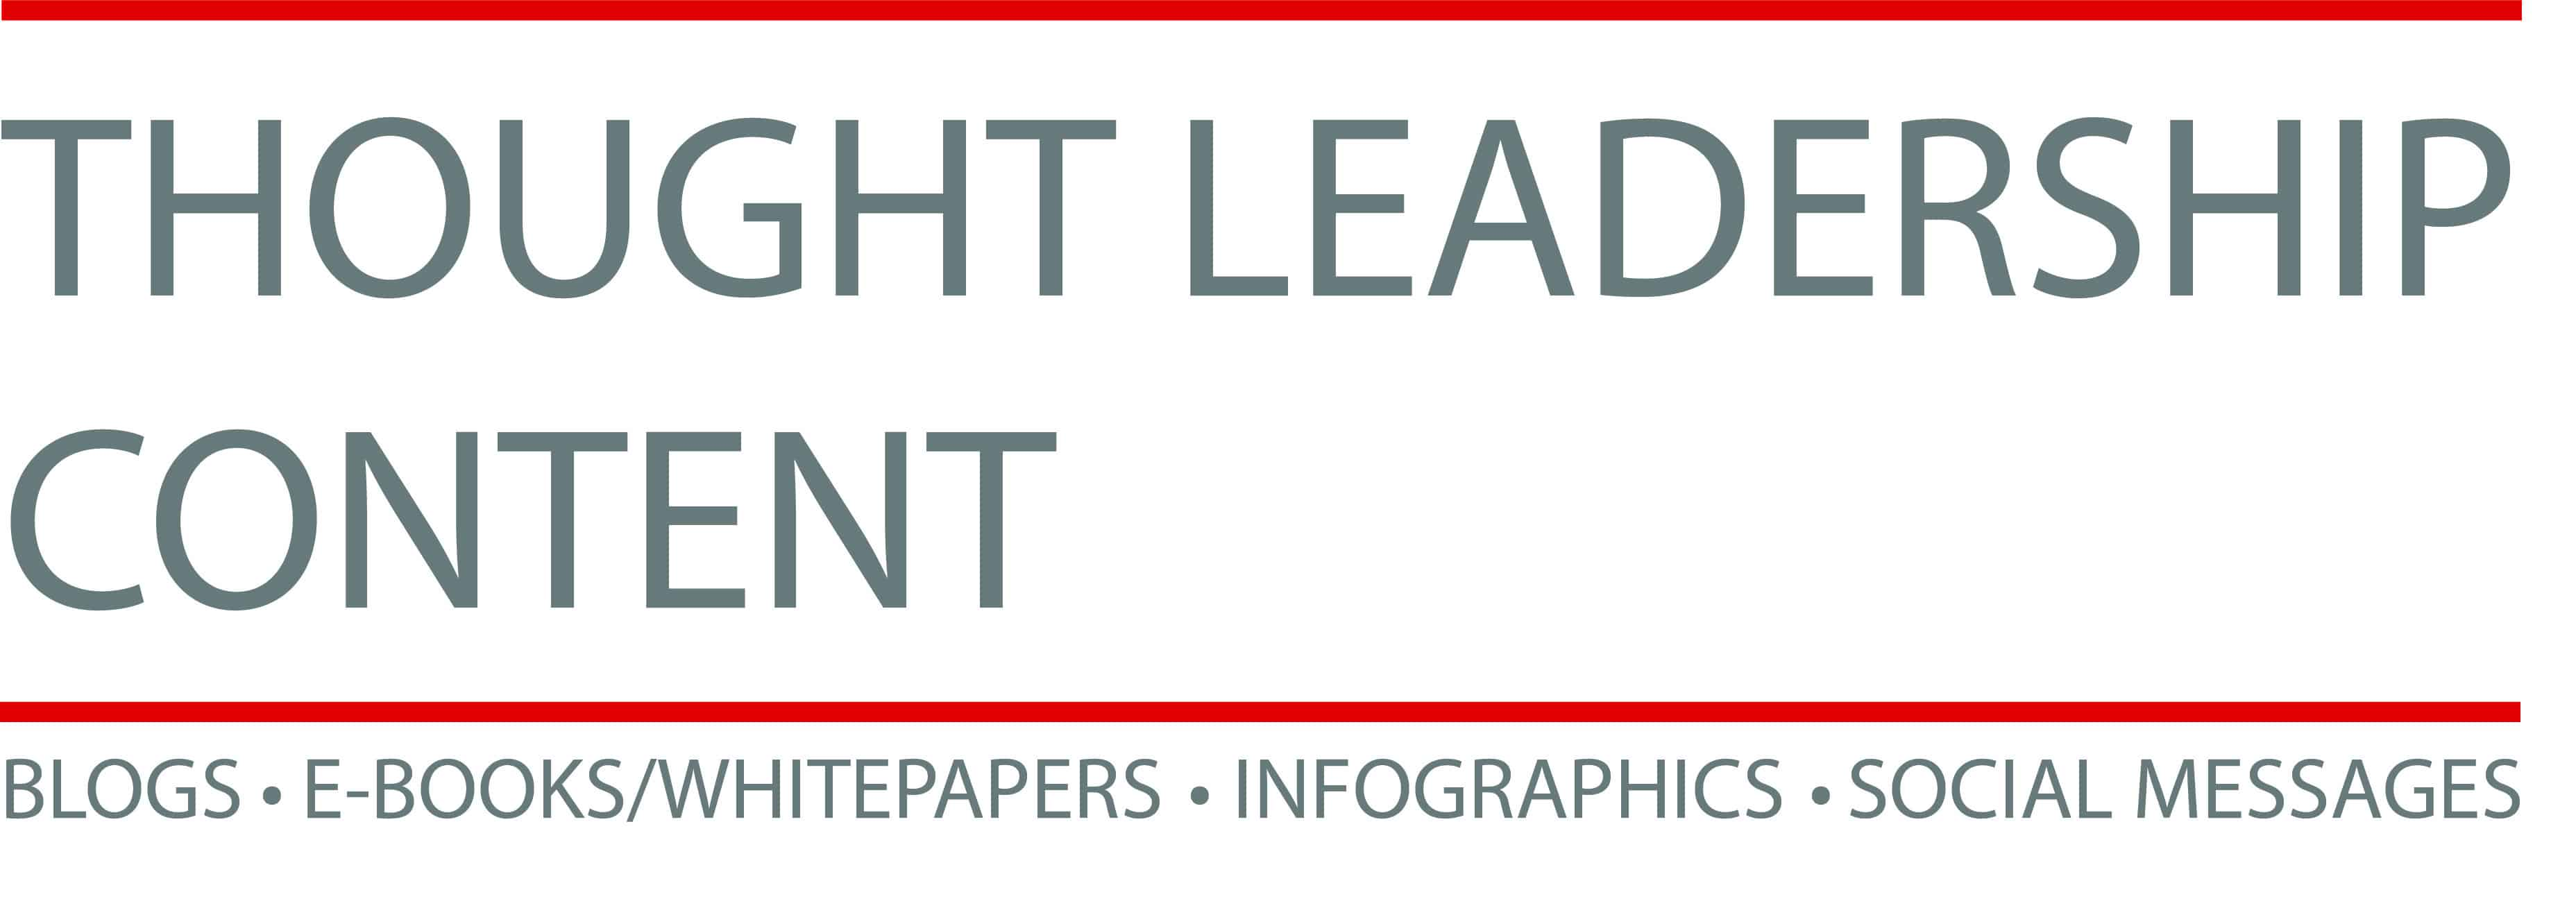 Thought Leadership Content Graphic for Sales